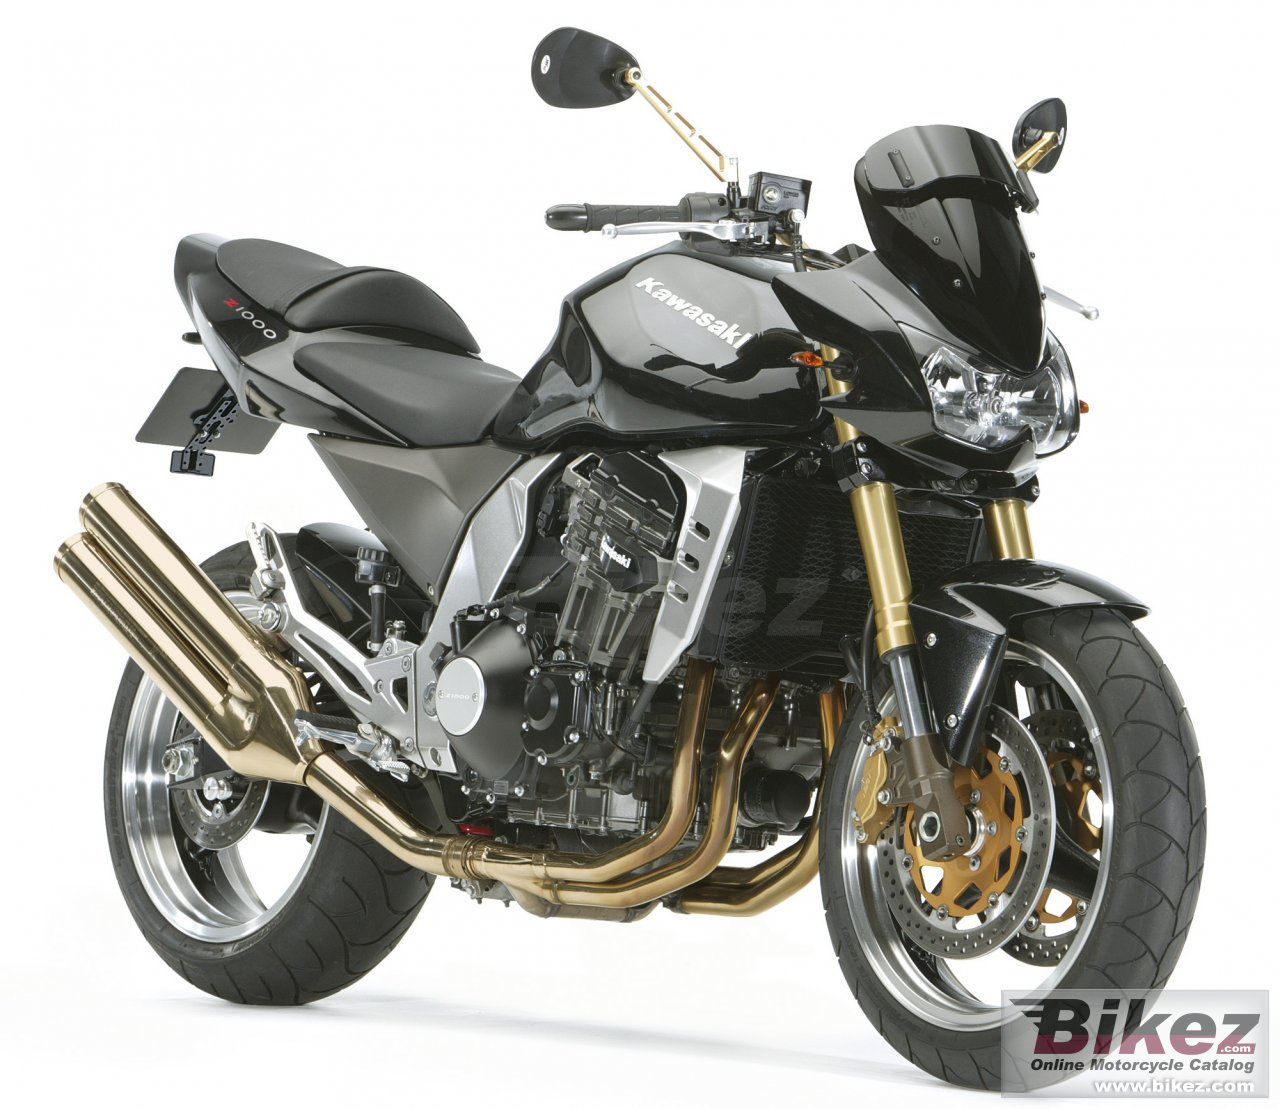 Big Kawasaki z1000 picture and wallpaper from Bikez.com